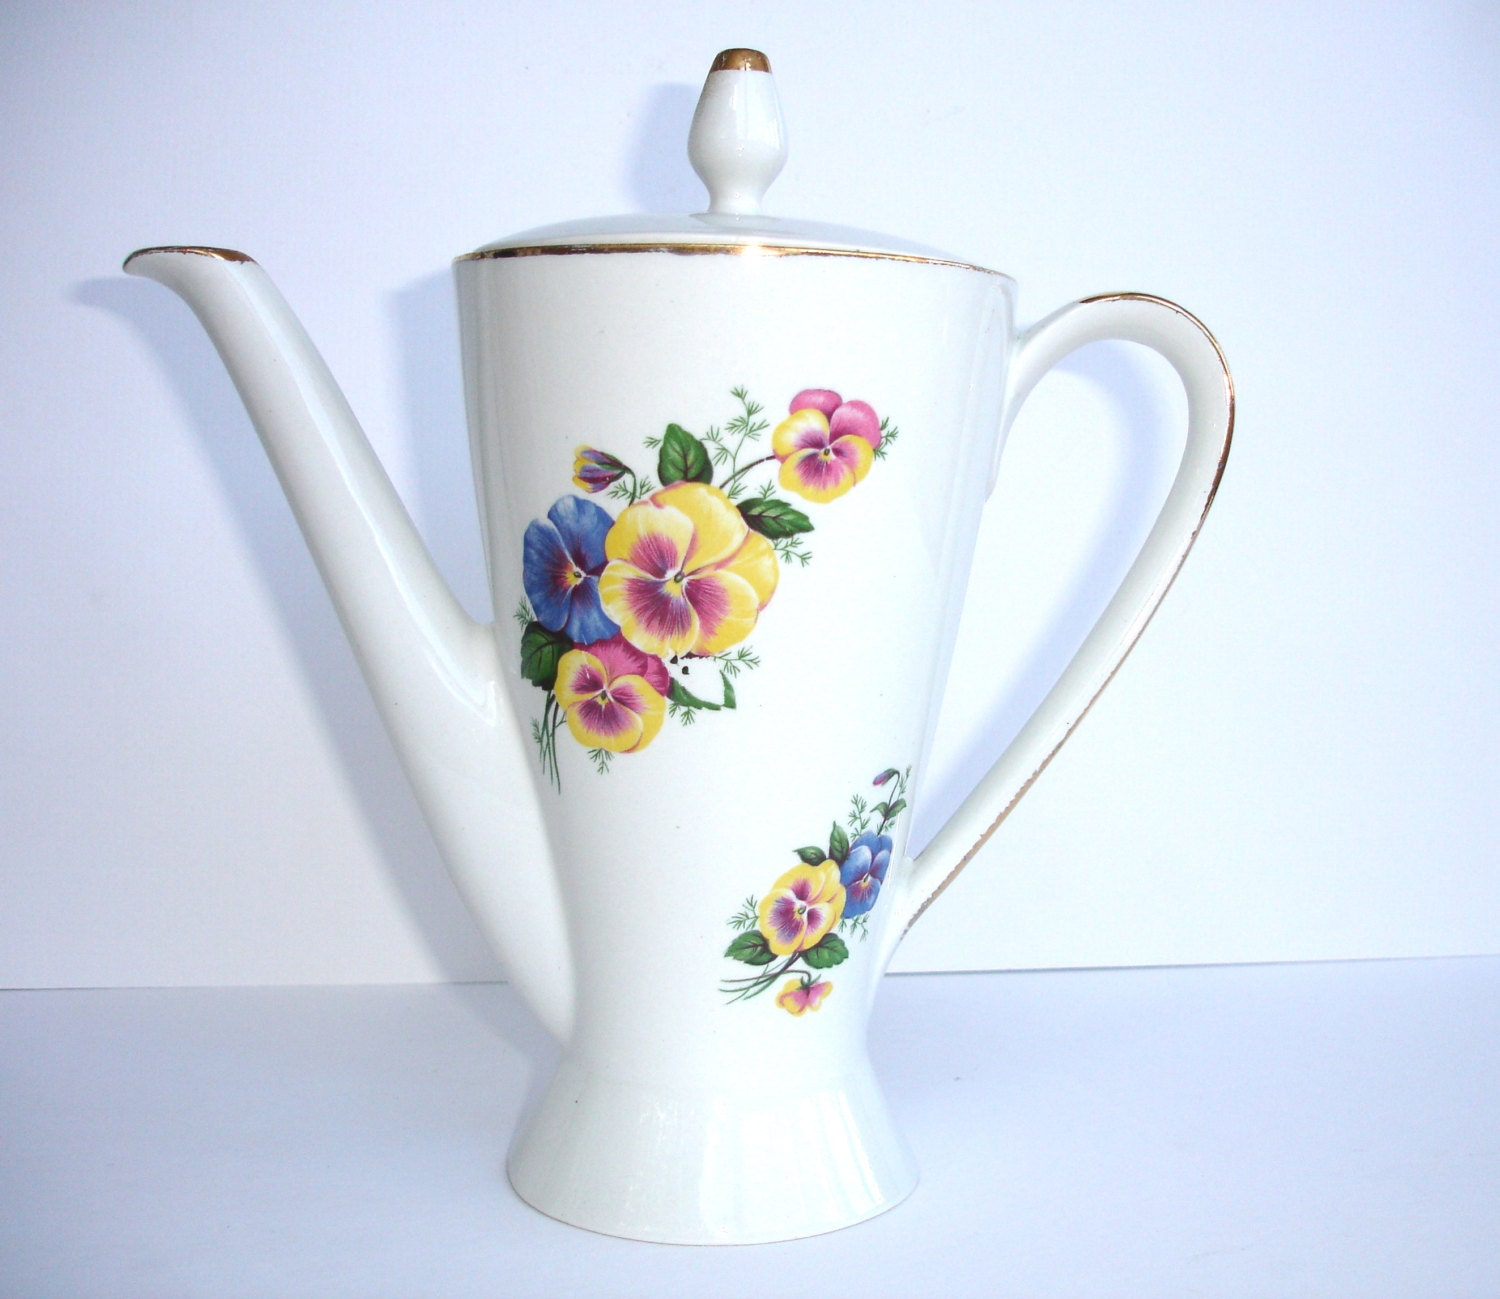 1940s Burgess Leigh Burleigh Ware Coffee Pot With A